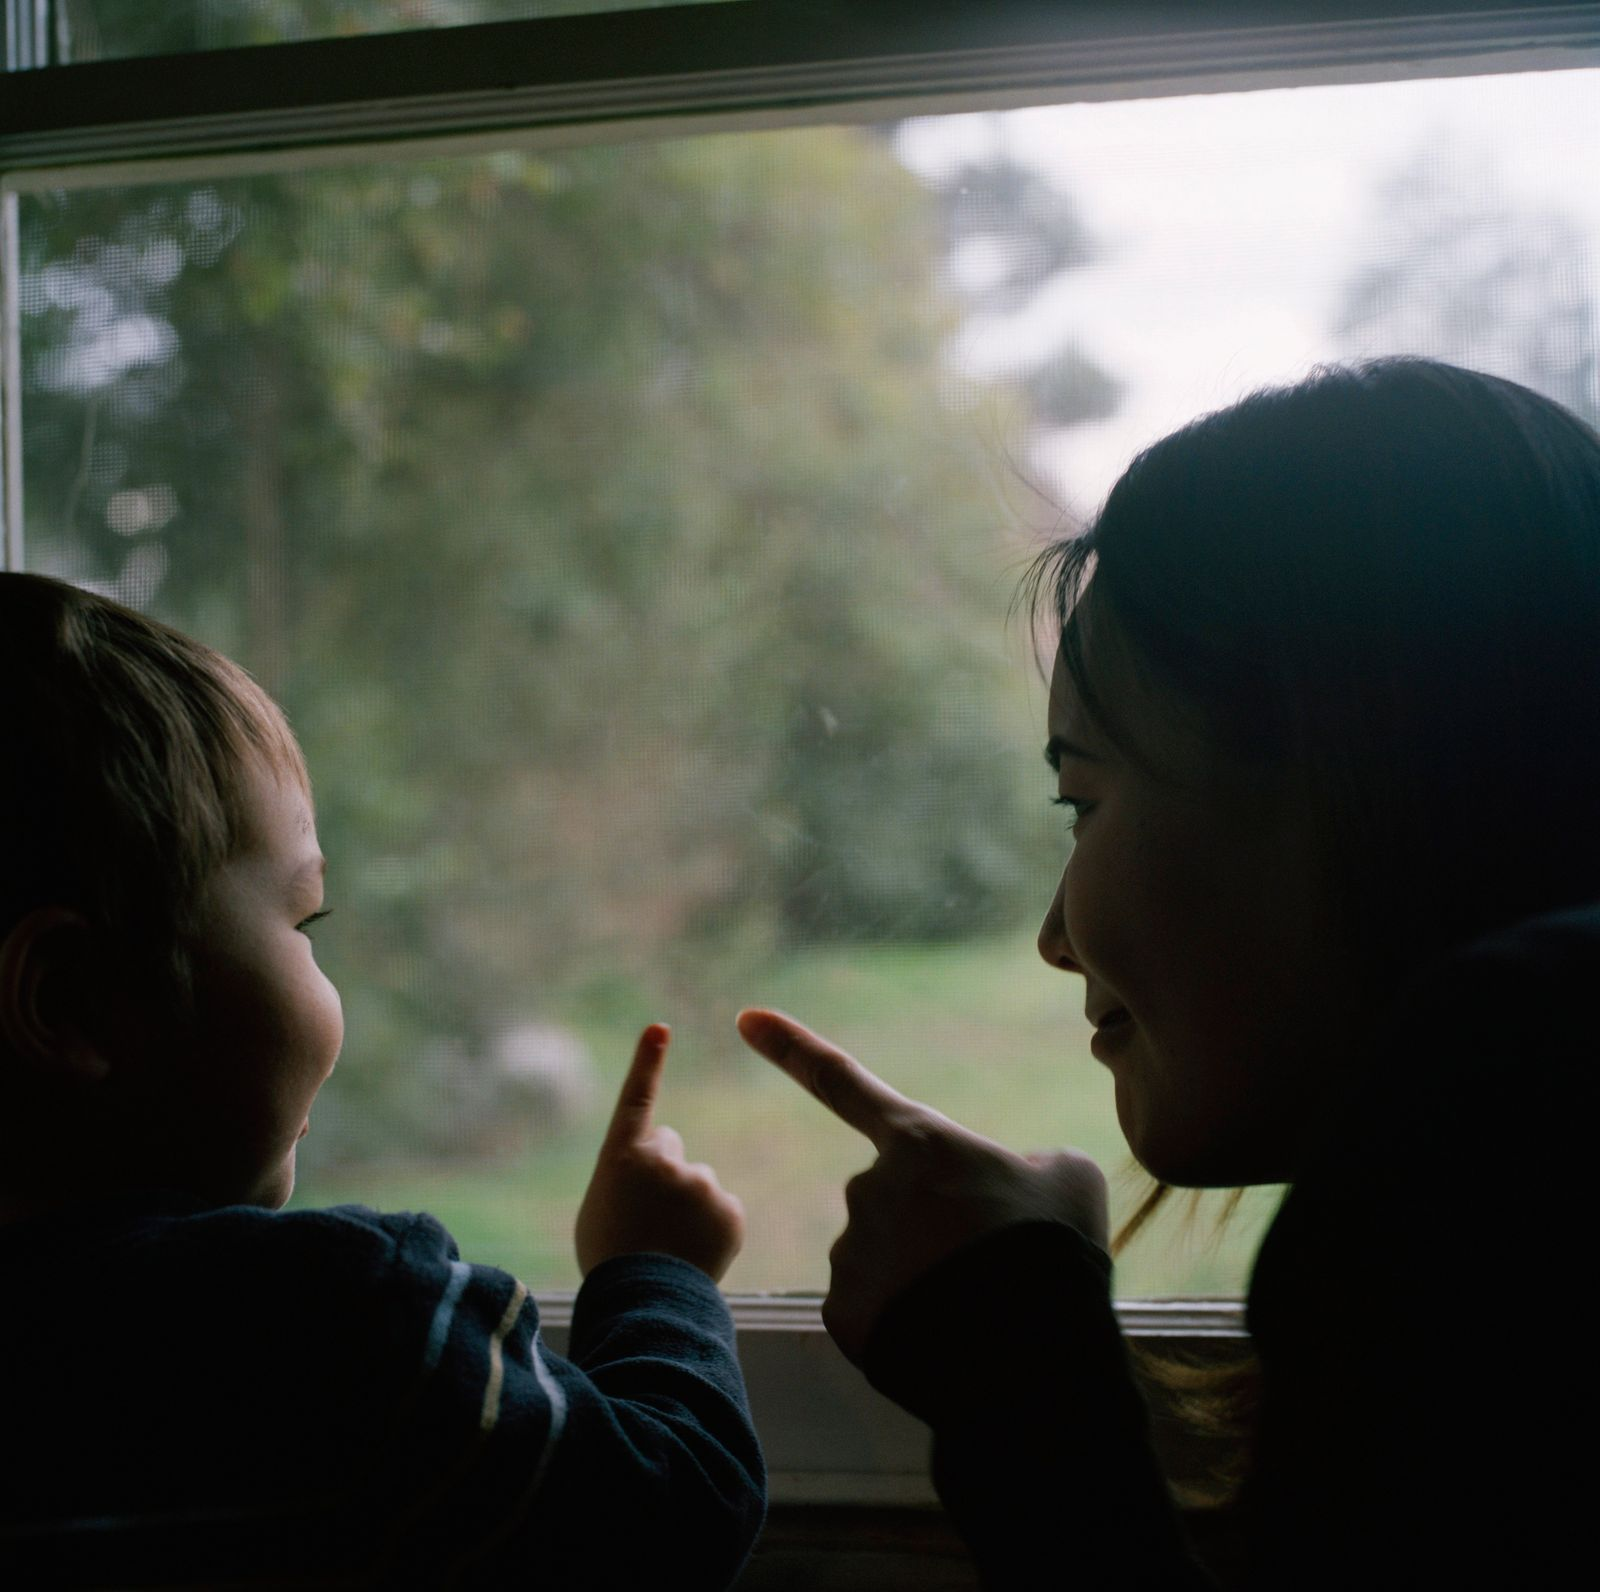 Mother and son pointing out of the window